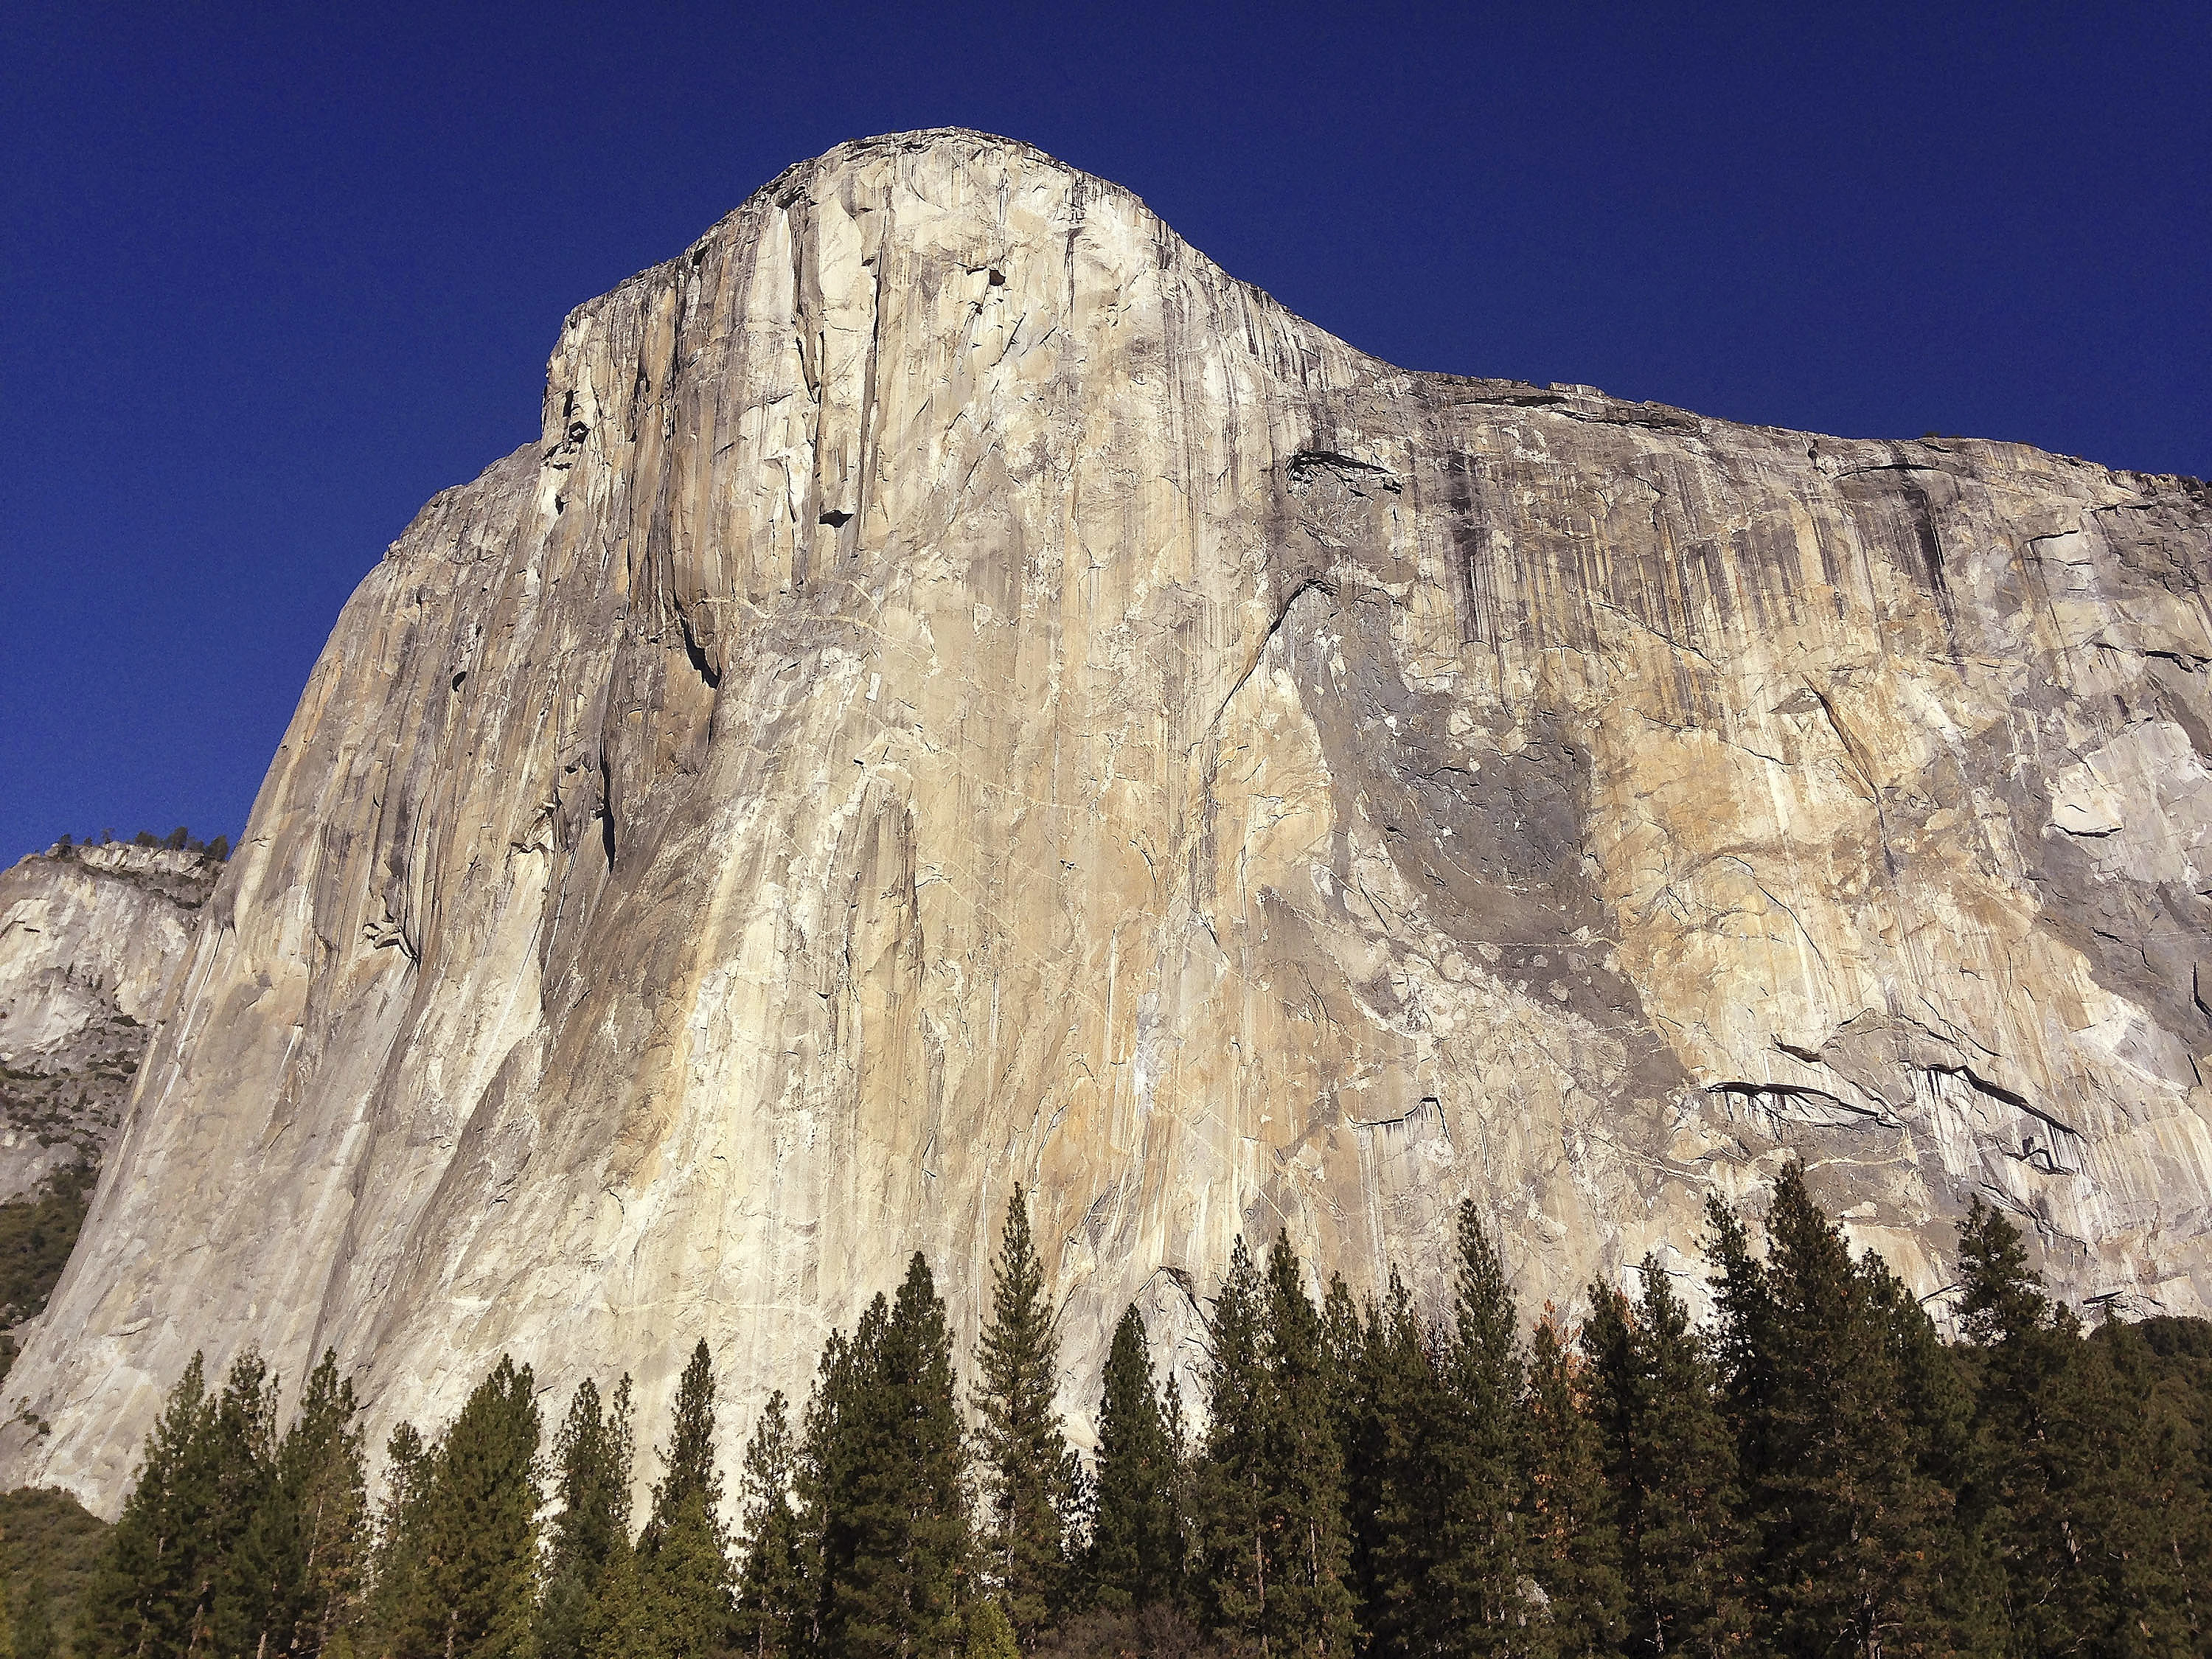 Yosemite National Park: Man and woman fall to deaths from